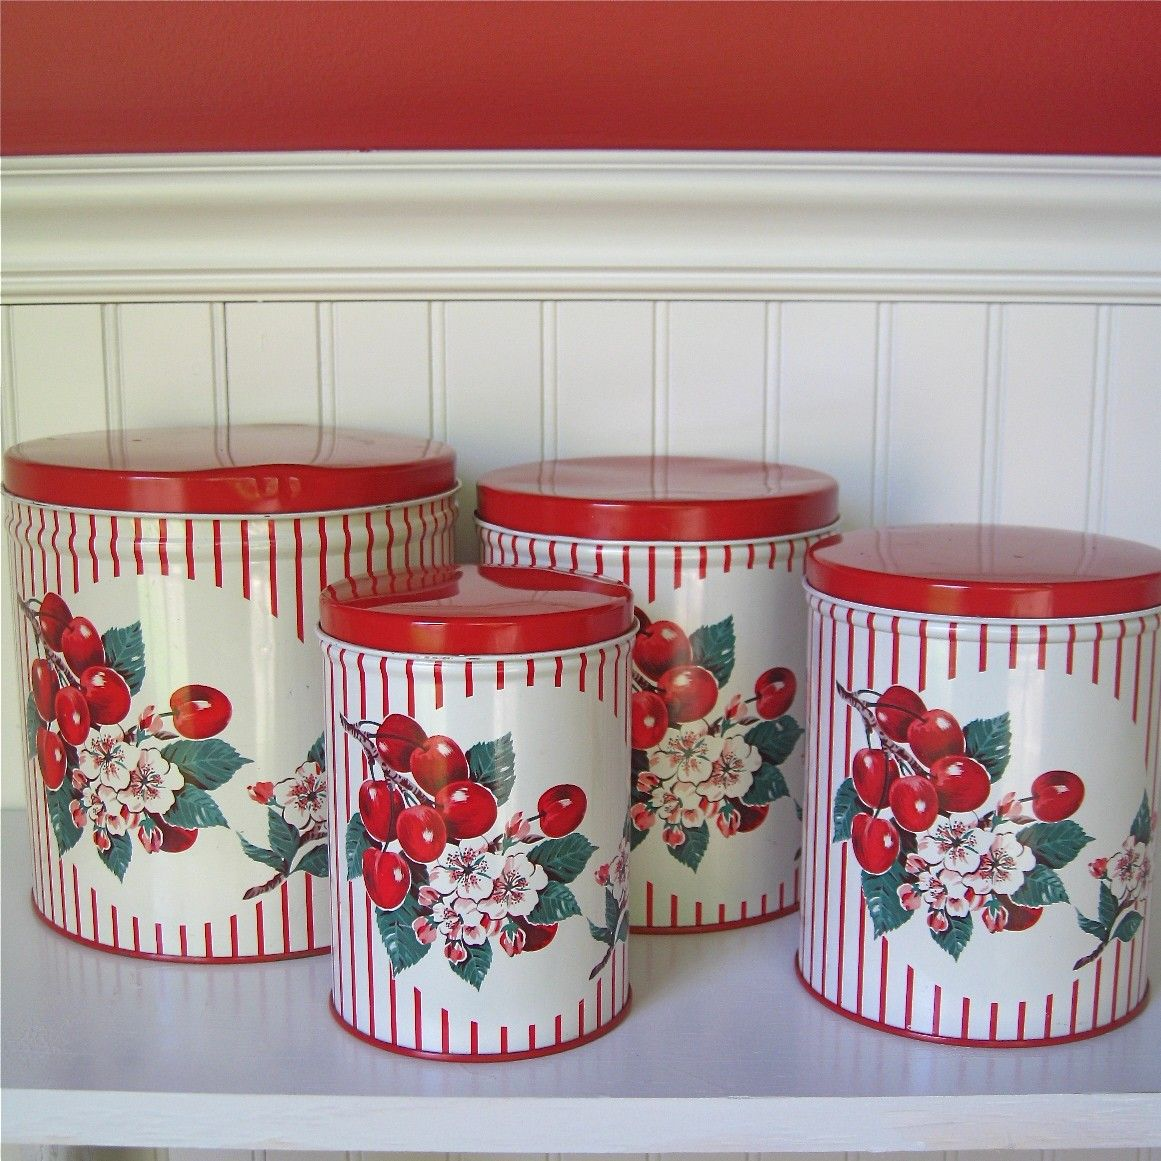 vintage metal kitchen canisters cherries print on stripes